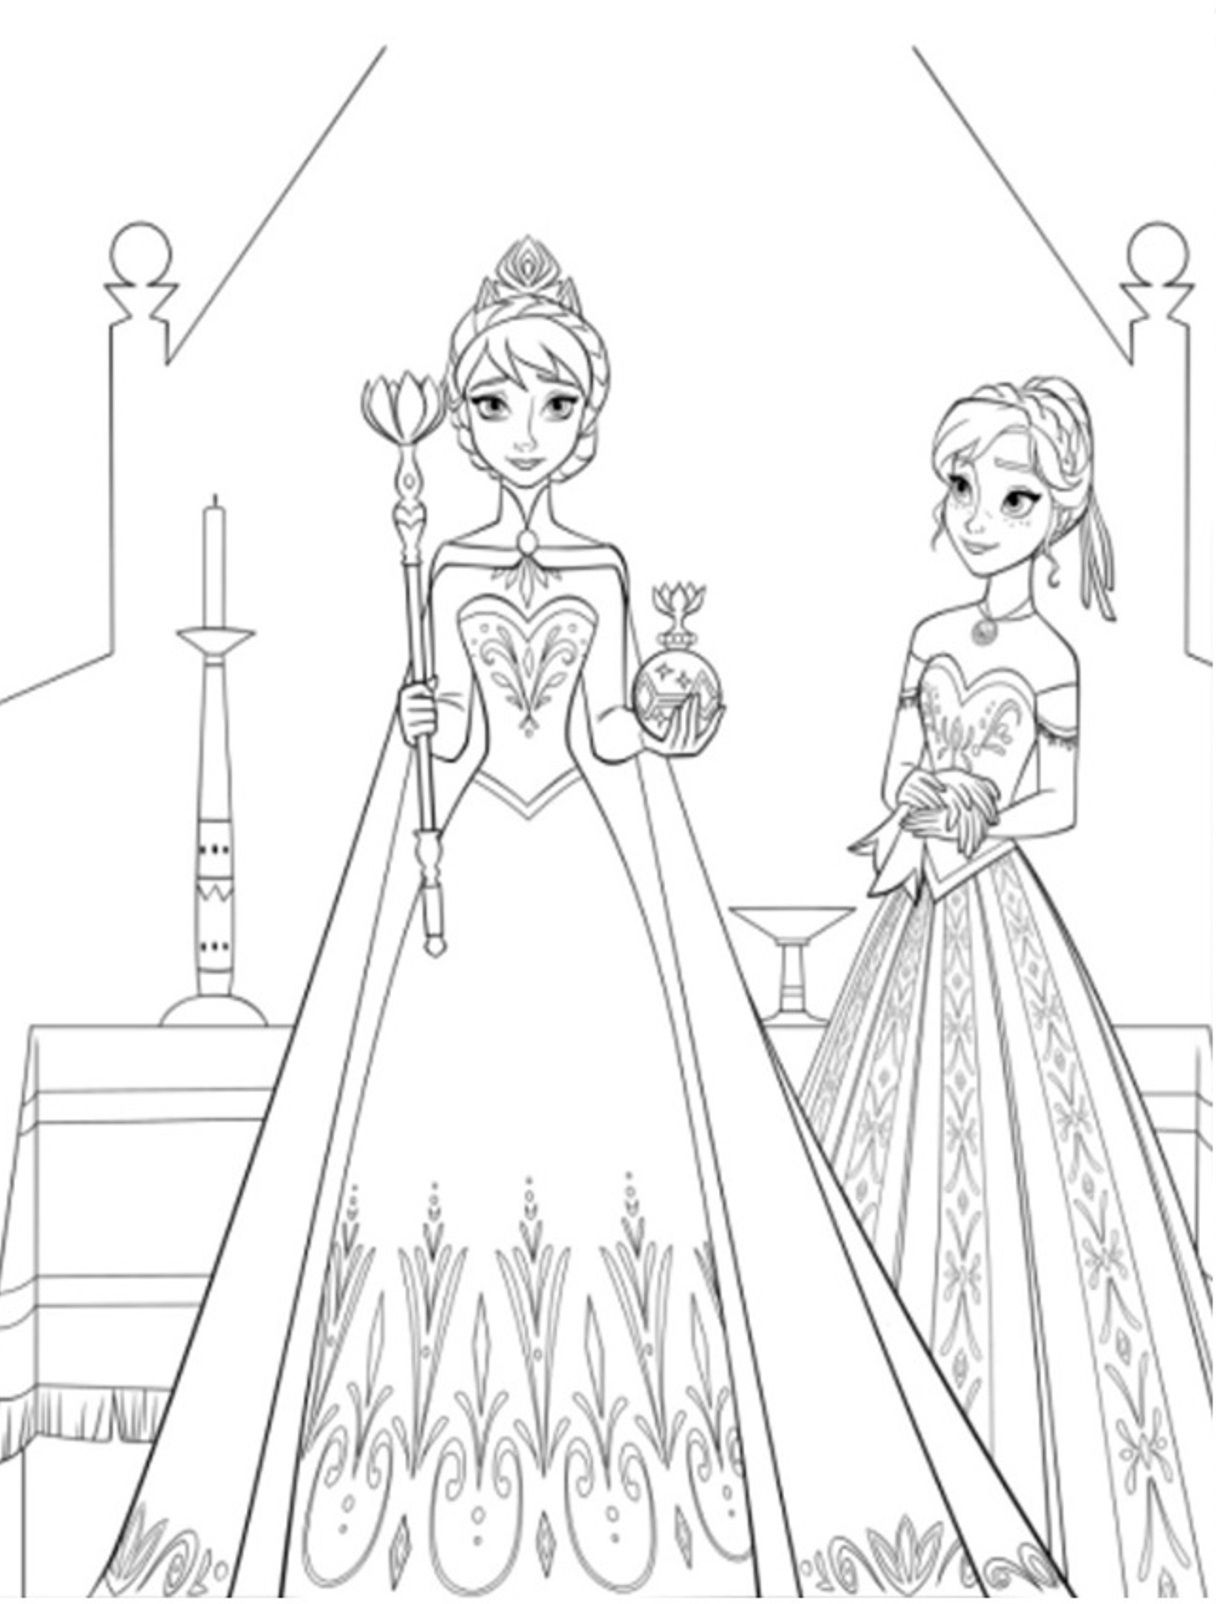 Elsa And Anna Colouring Pages Image Coloringz Com Coloriage Reine Des Neiges Coloriage Coloriage Elsa